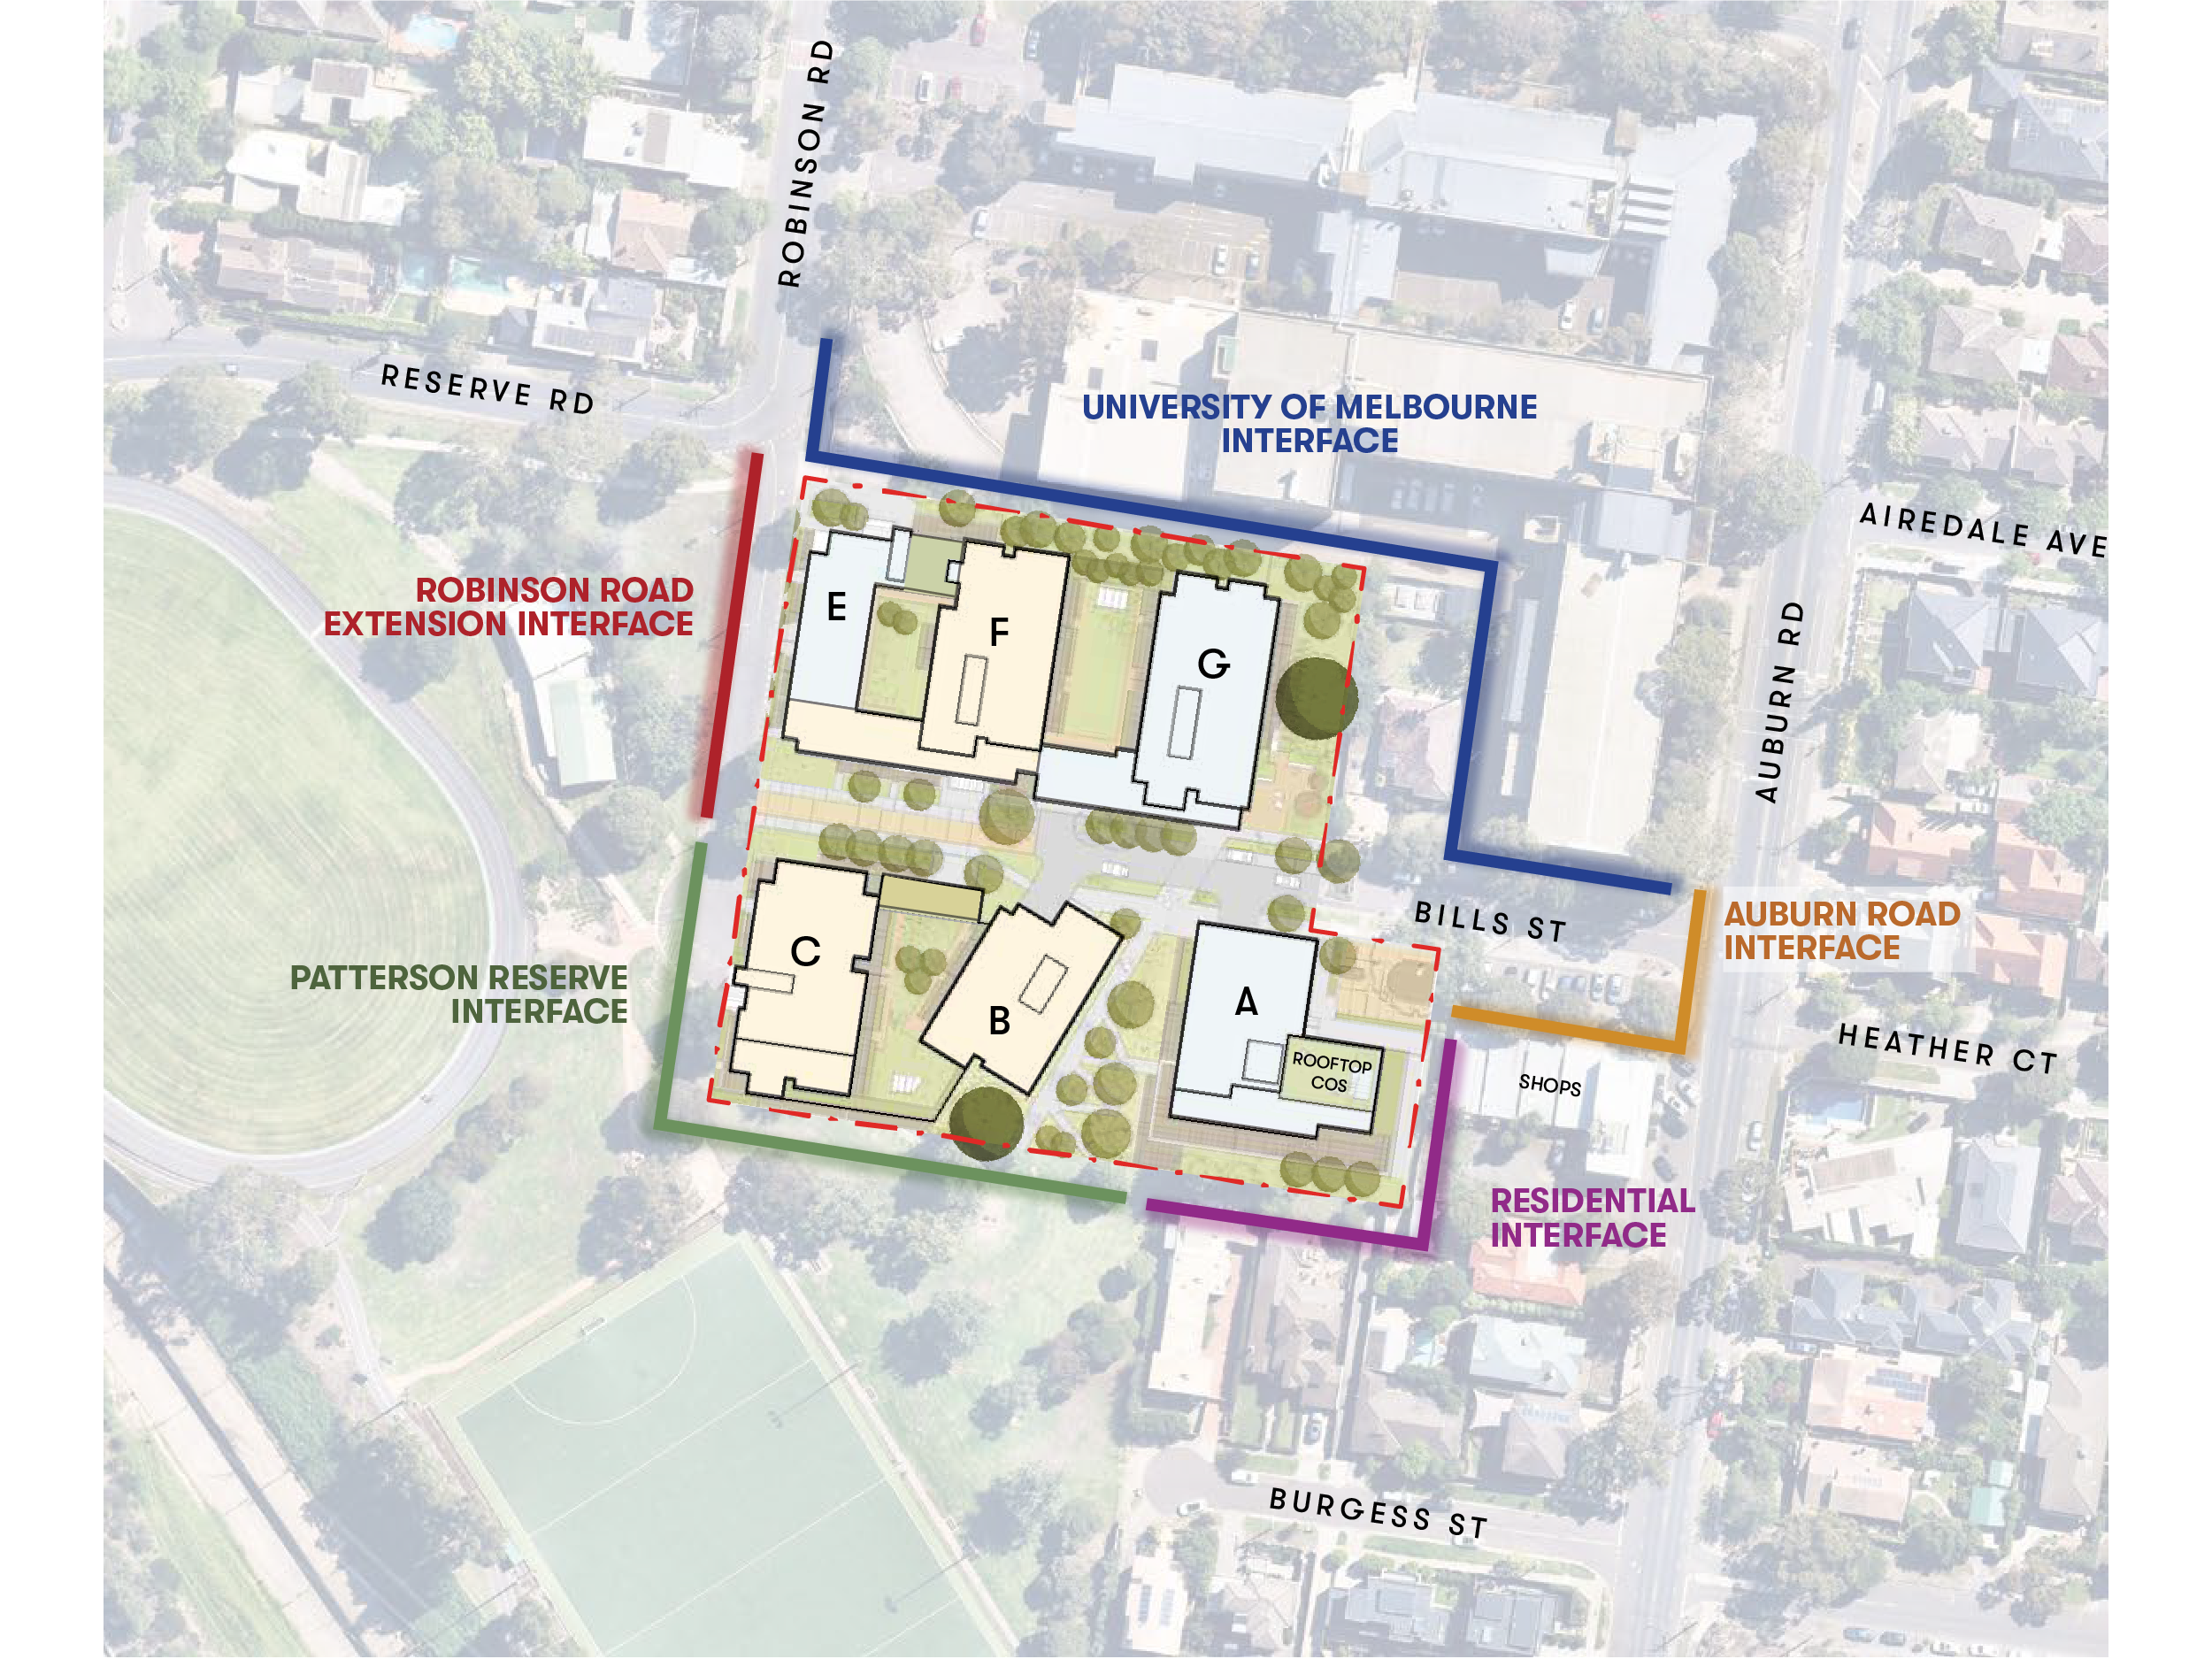 Map showing the Bills Street redevelopment site with the University of Melbourne interface to the north and north-east, Auburn Road interface to the east and south-east, residential interface to the south-east, Patterson reserve interface to the south-west and Robinson Road Extension interface to the west